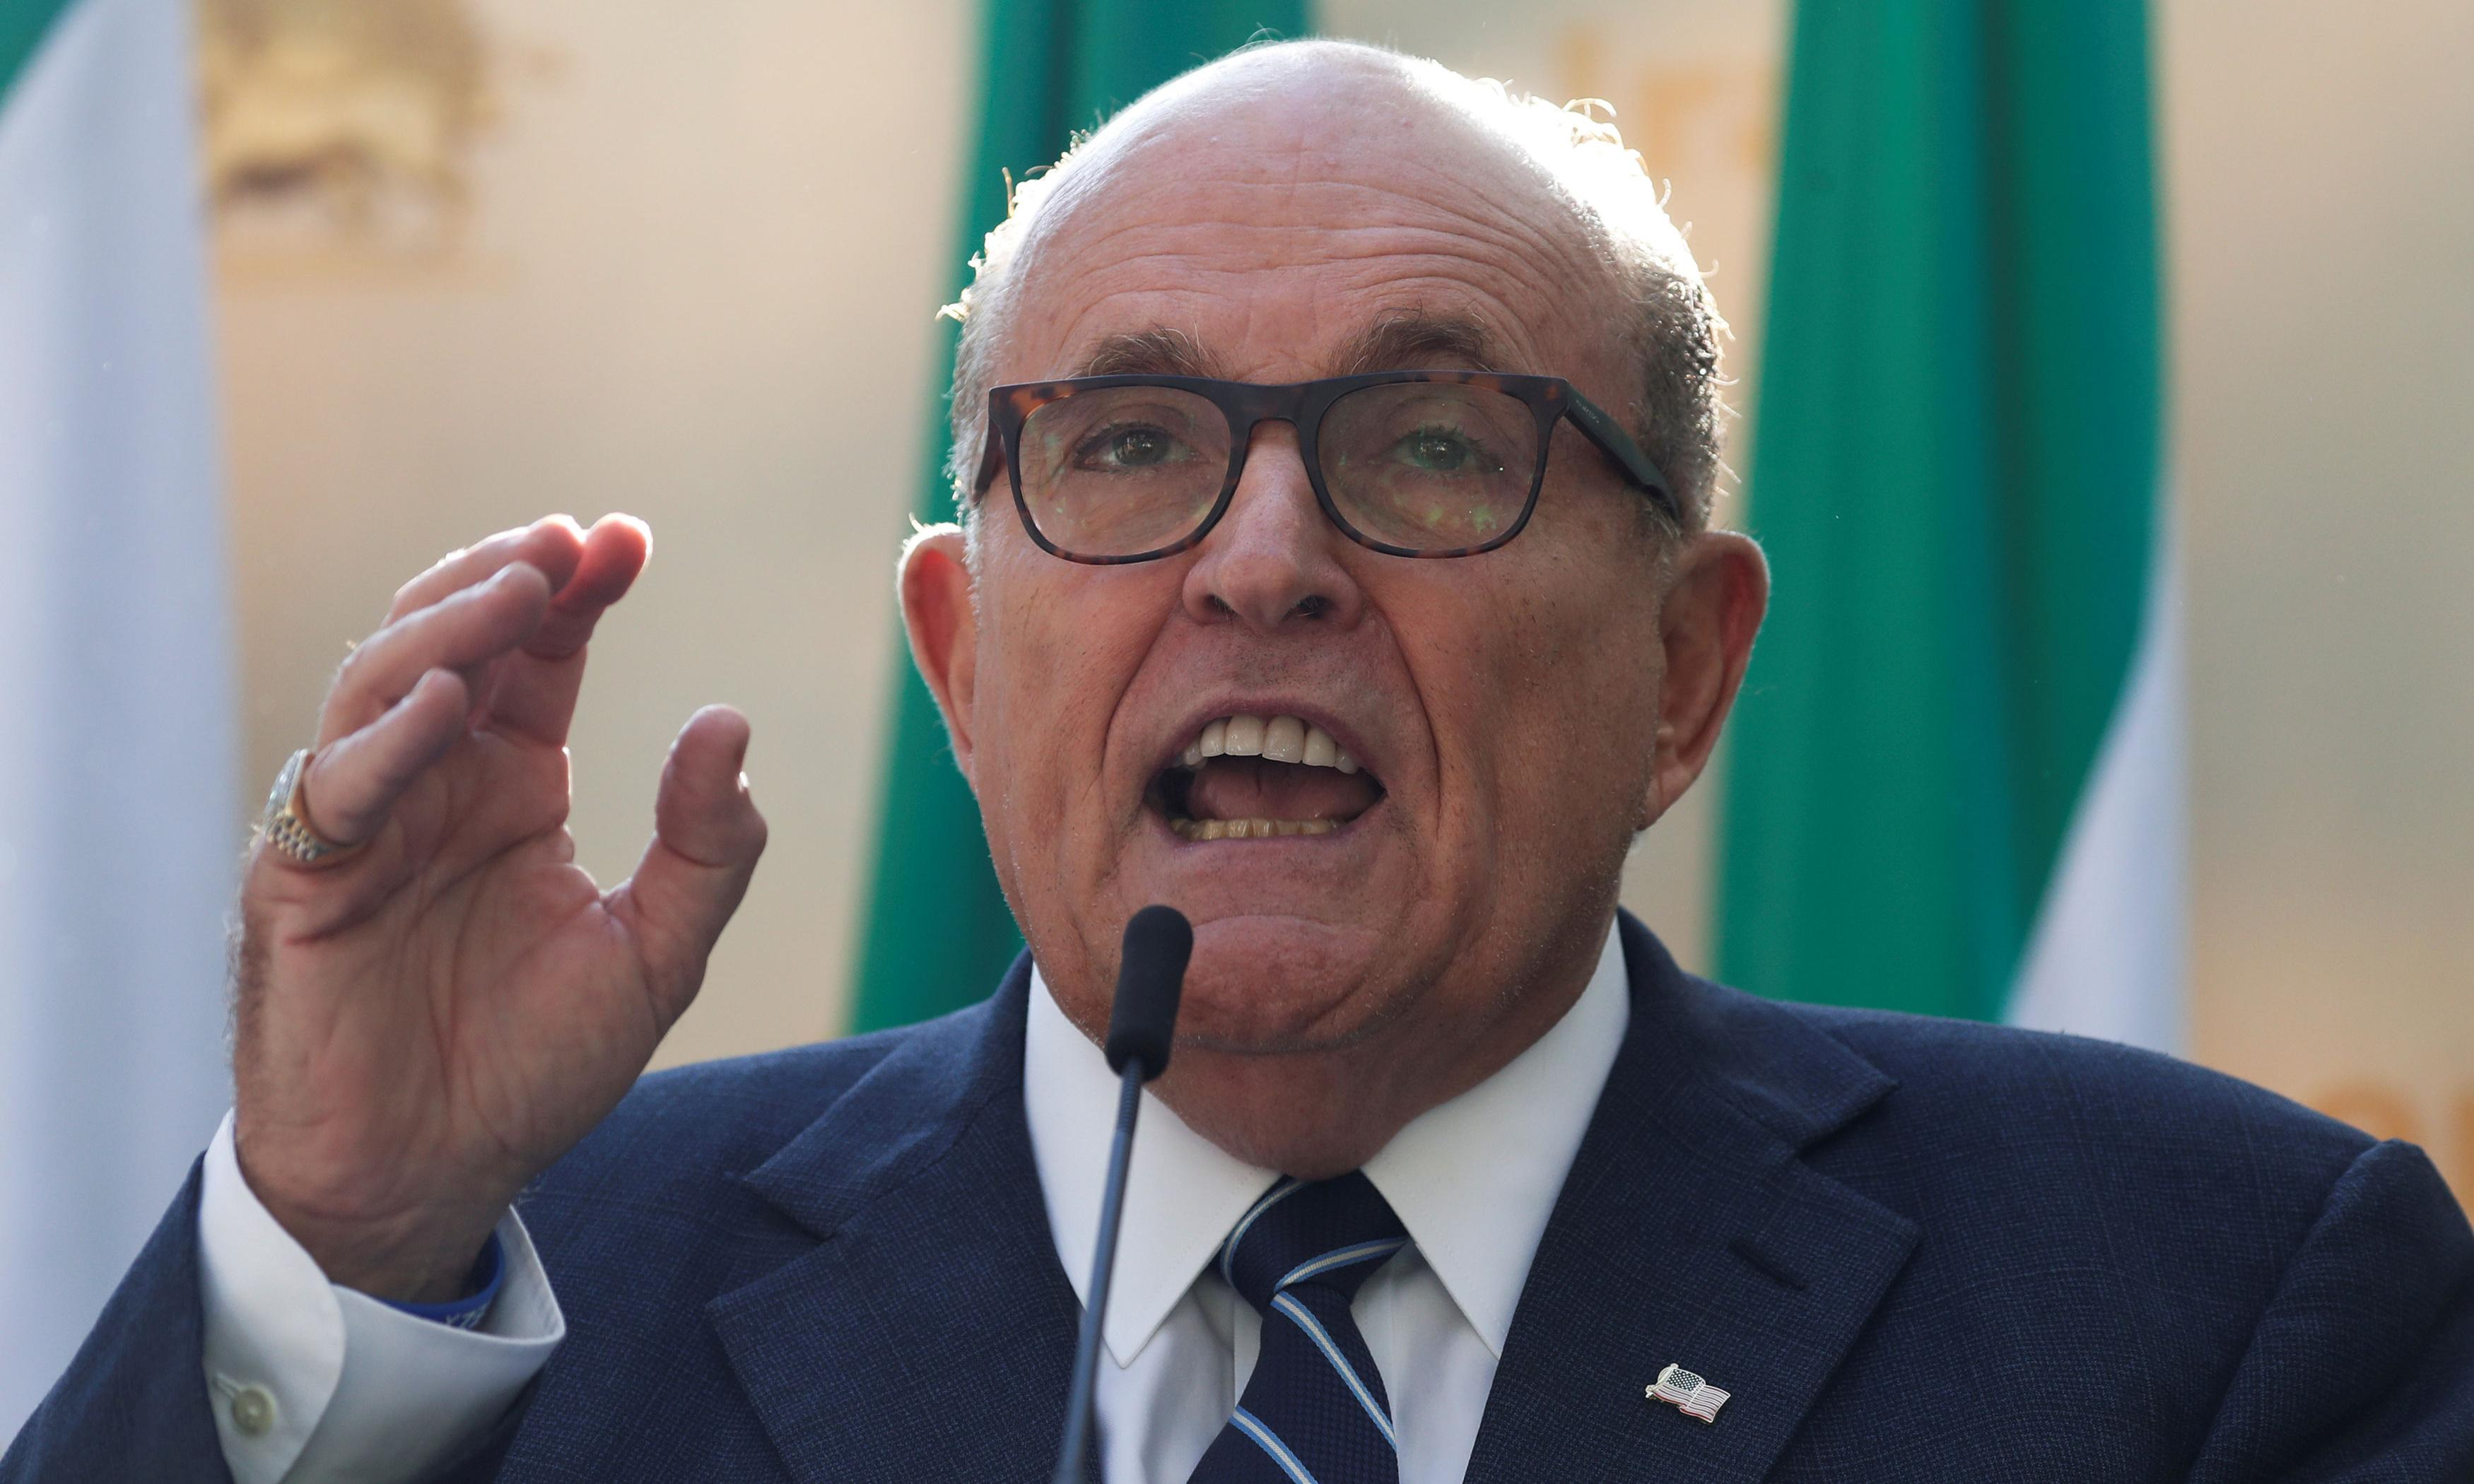 Giuliani offers bizarre explanation for 'misleading' claims about Clinton